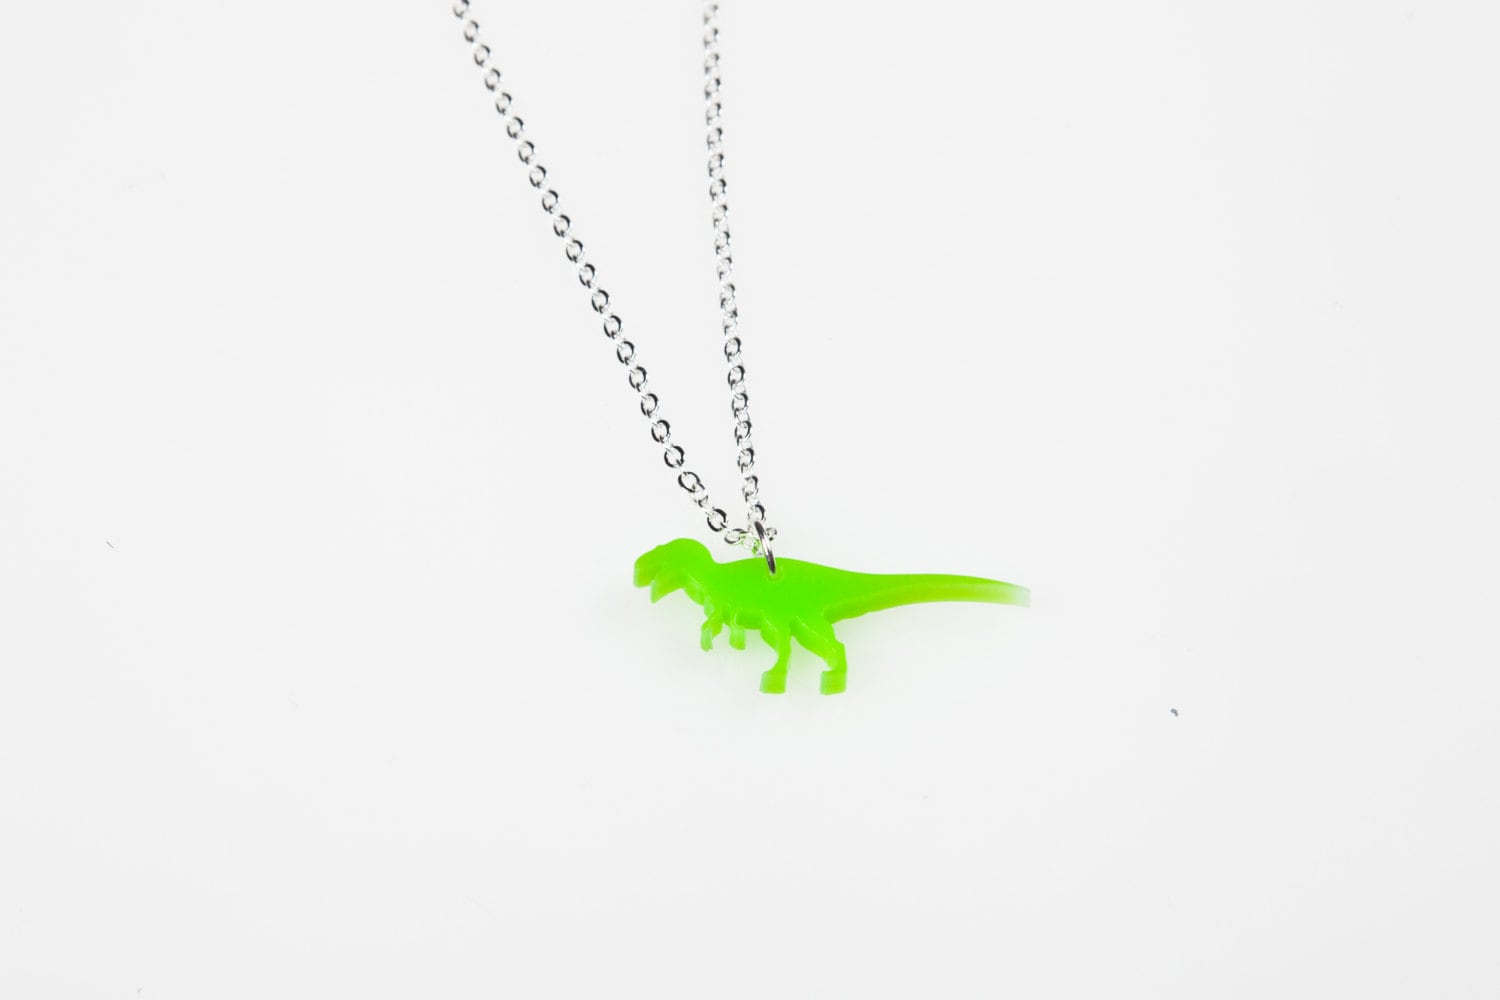 dinosaur tatty gold pendant necklace devine mirrored acrylic acryl